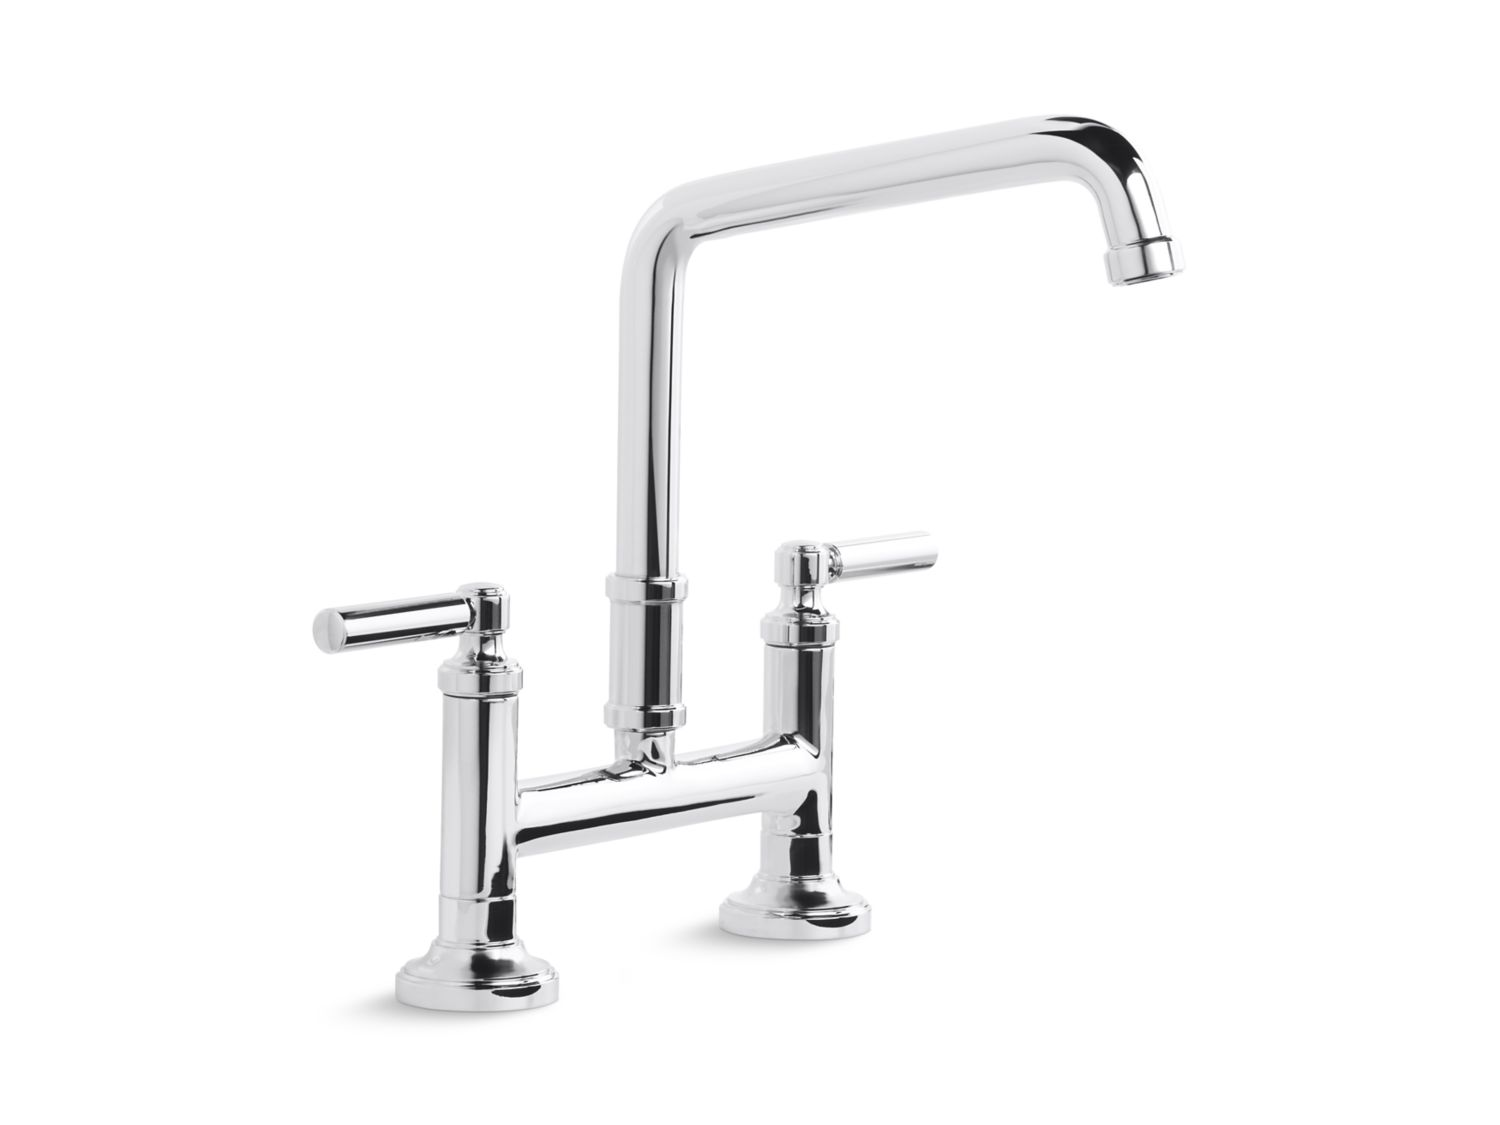 Quincy Deck-Mounted Bridge Faucet, Lever Handles | P25001-00 | Kitchen  Faucets | Kallista